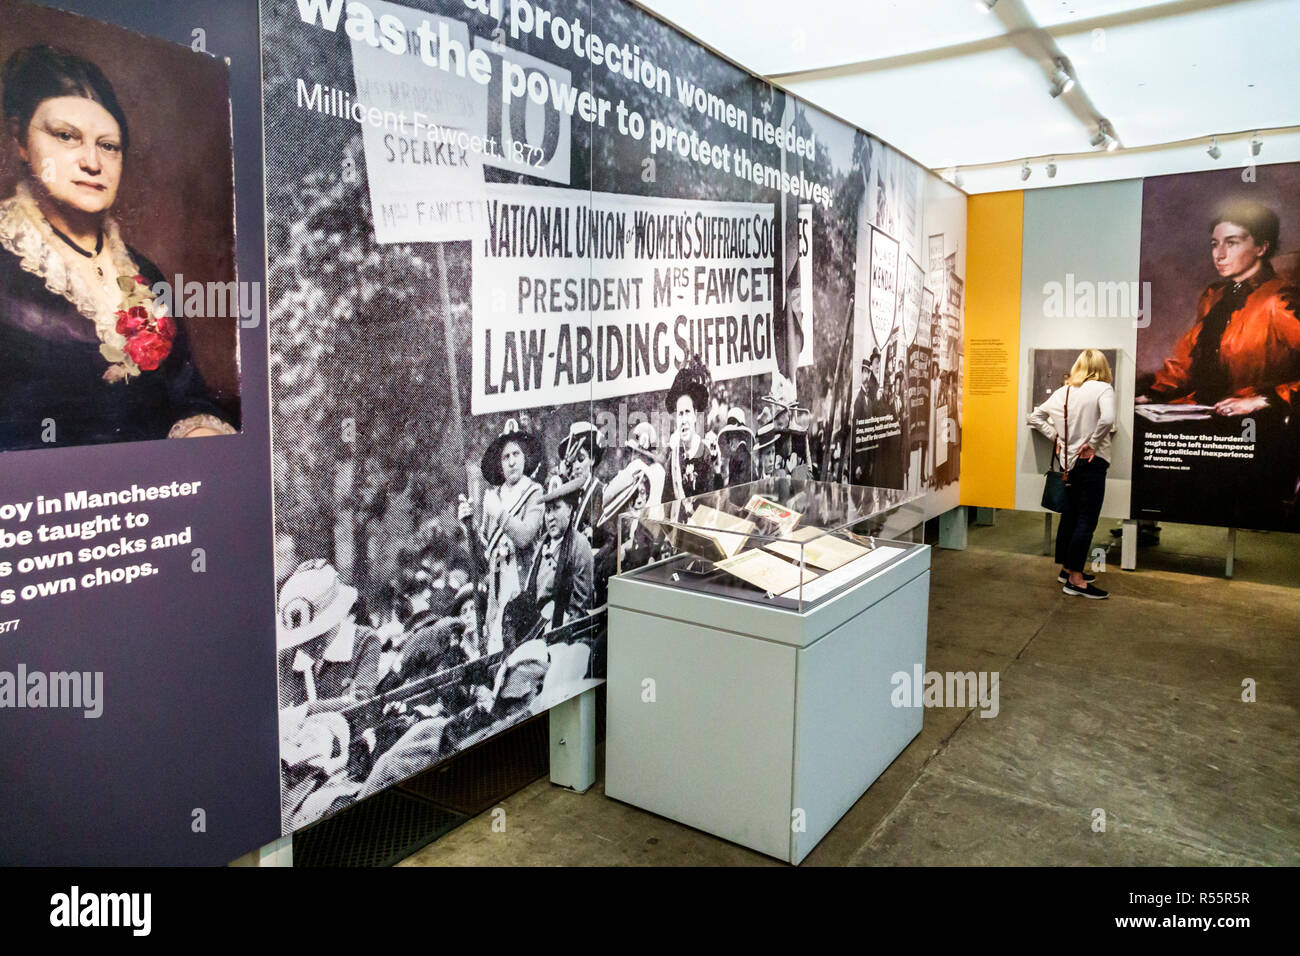 United Kingdom Great Britain England London Palace of Westminster Parliament Westminster Hall interior exhibition Voice & Vote: Women's Place in Parli - Stock Image